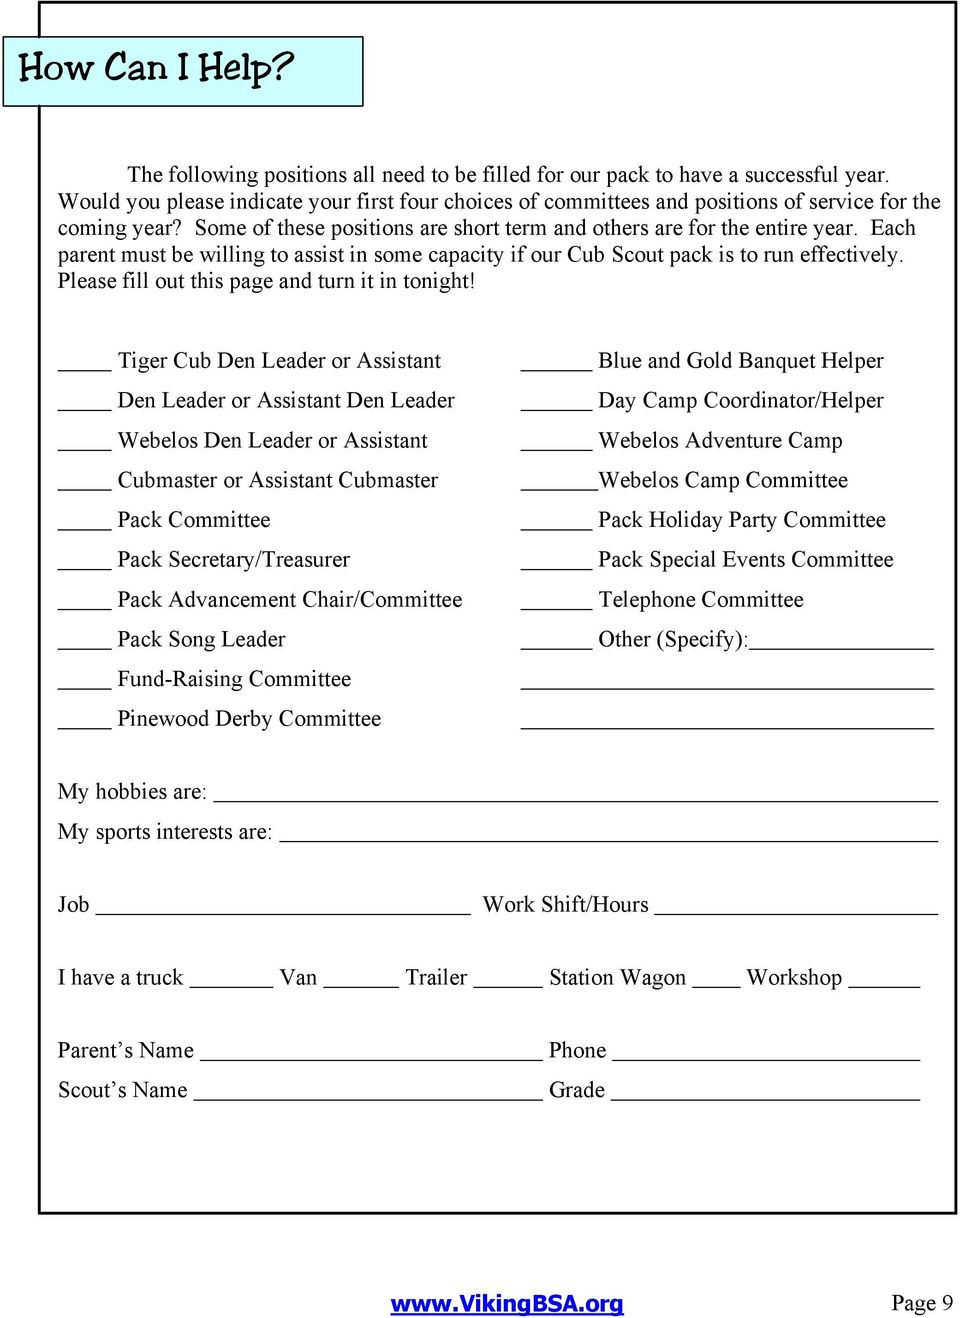 Each parent must be willing to assist in some capacity if our Cub Scout pack is to run effectively. Please fill out this page and turn it in tonight!